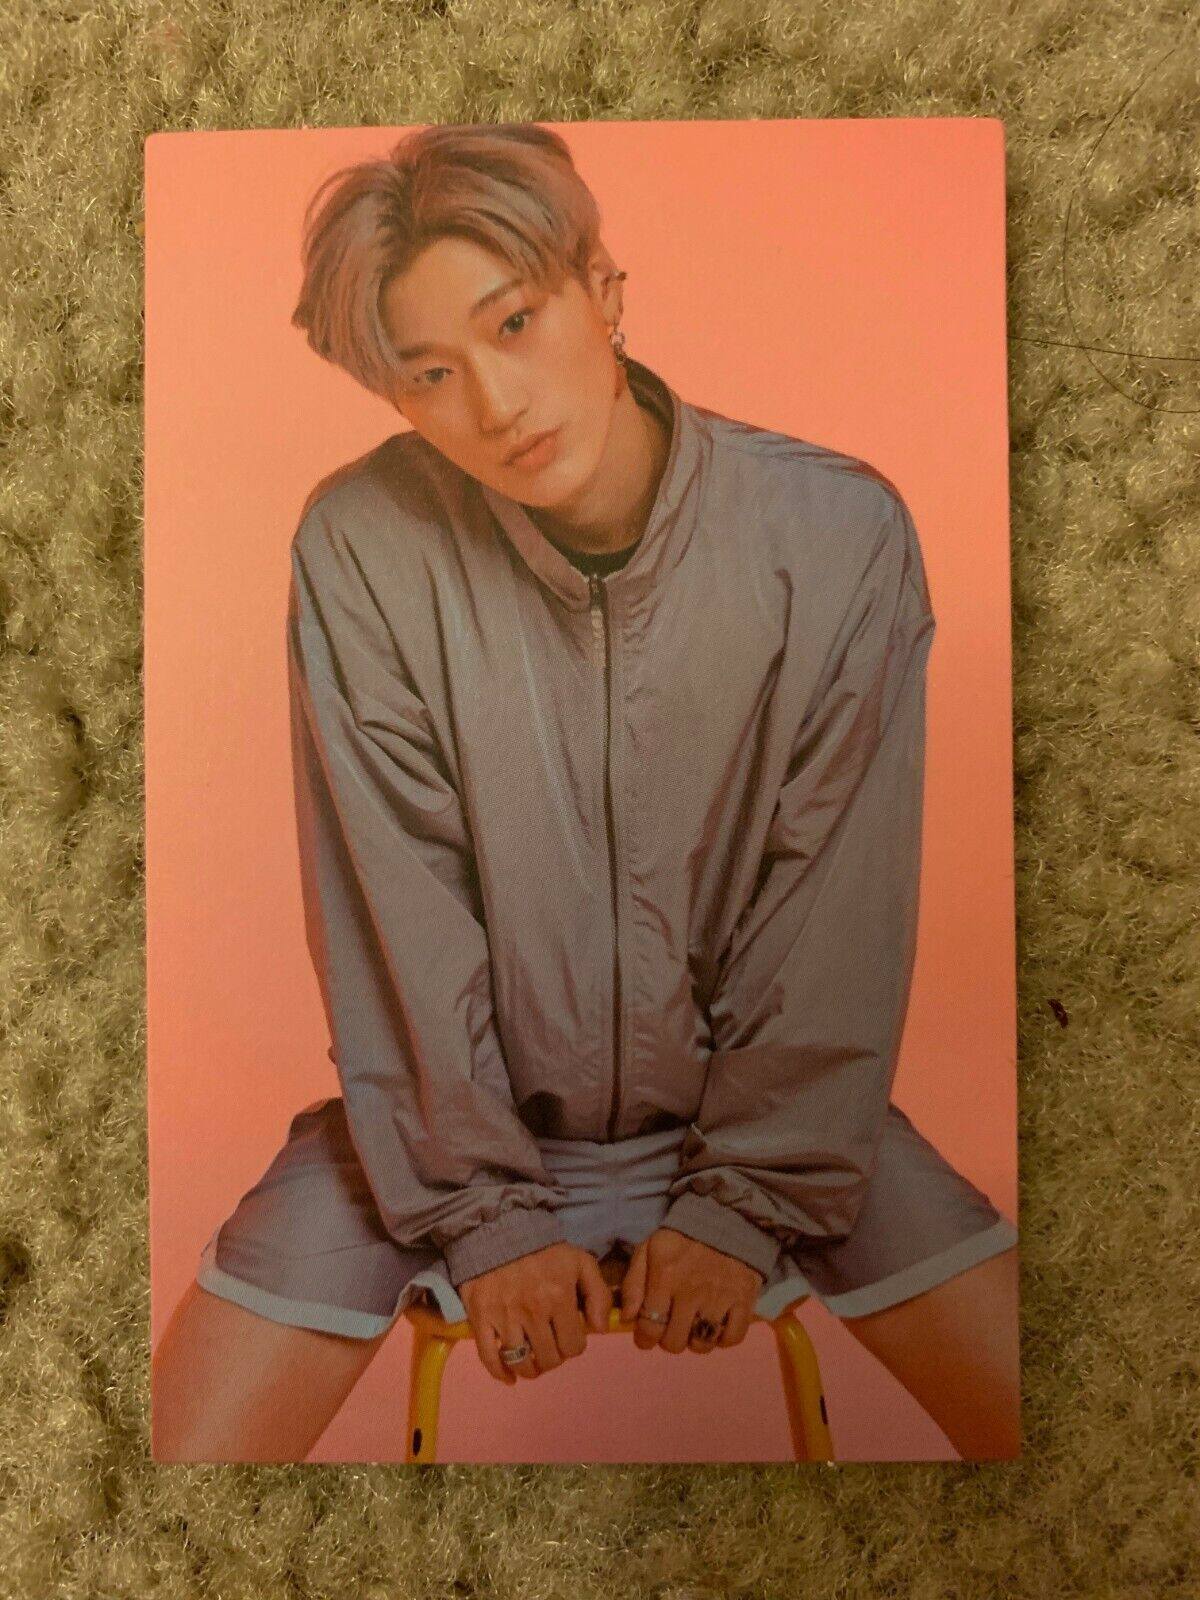 ***UPDATED***ATEEZ One To All Treasure EP. 3 Photocards (DM for Stamp Shipping) San Illusion